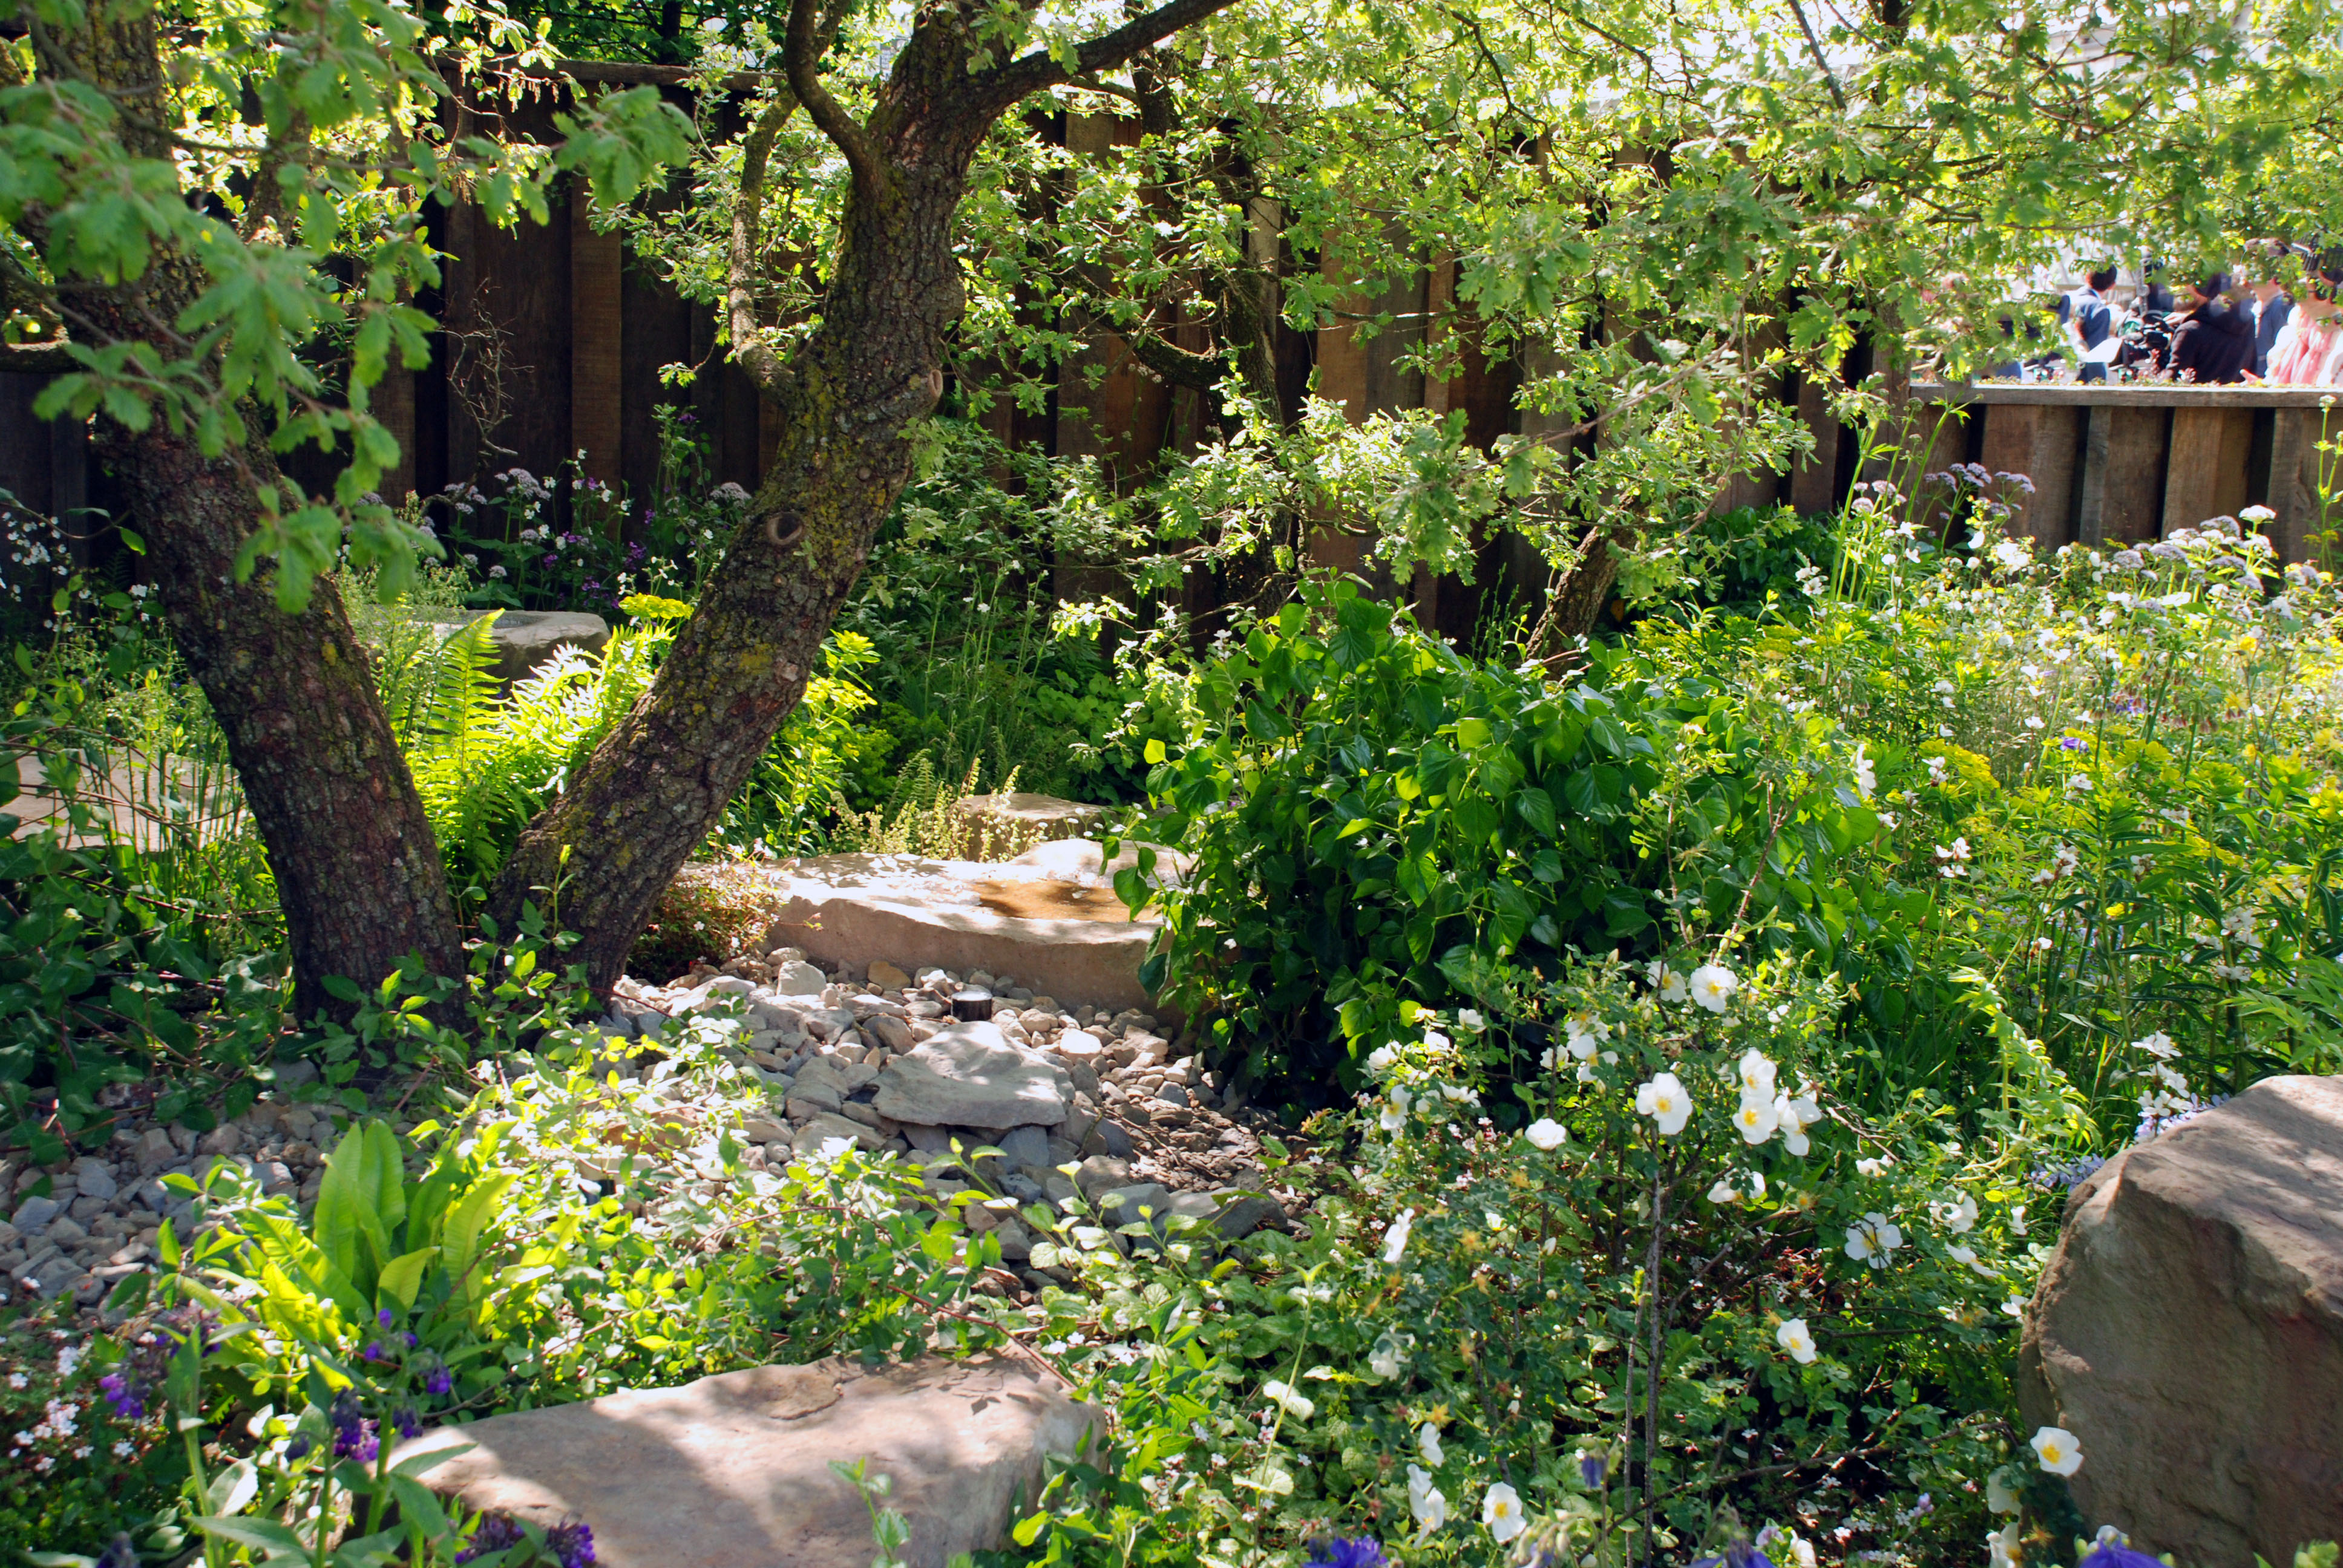 Cleve west lisa cox garden designs blog for Landscape my garden